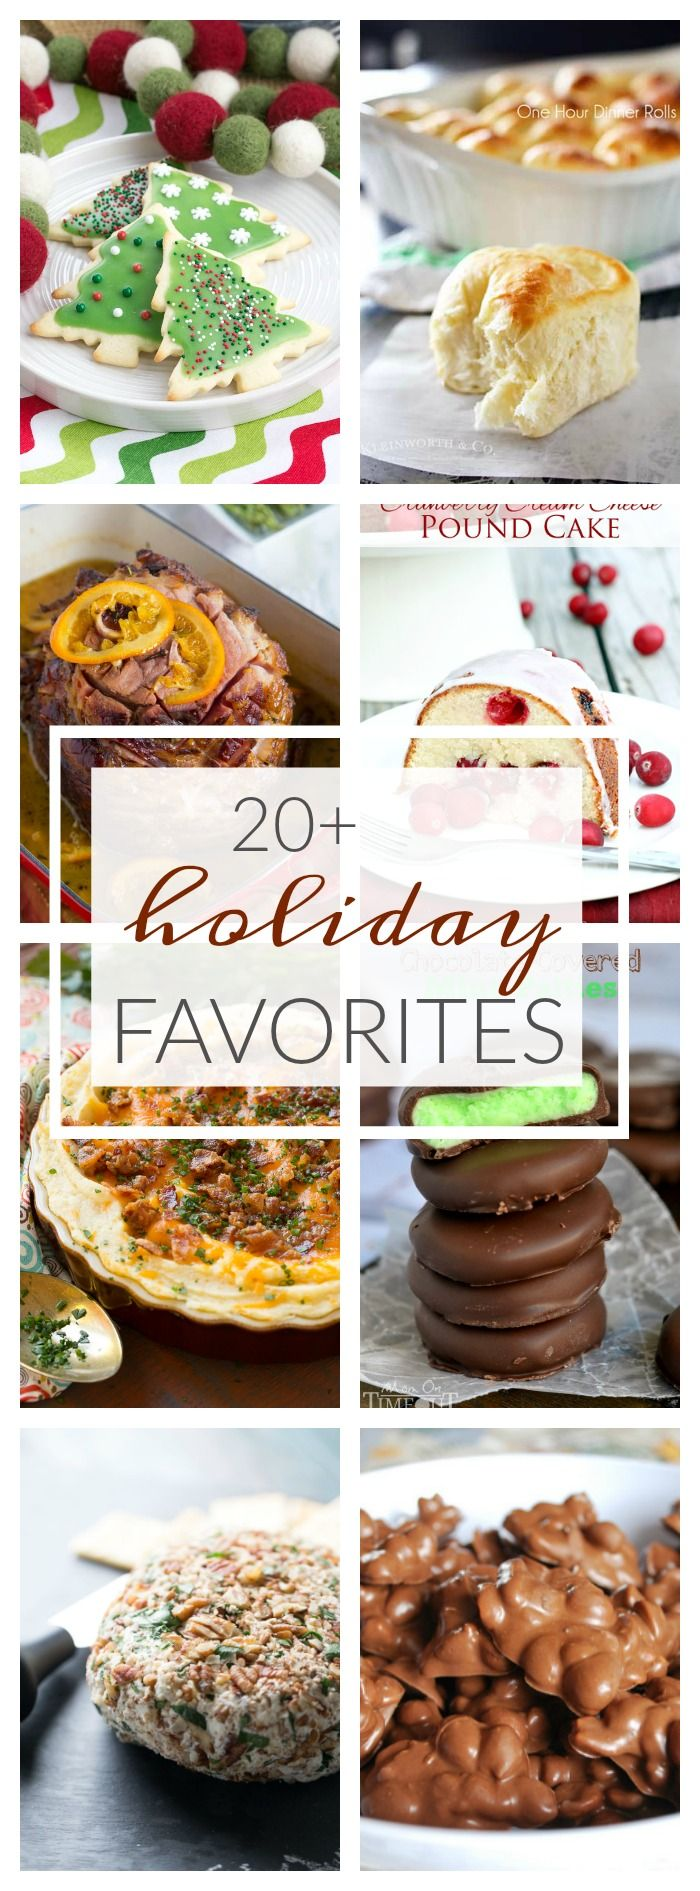 Looking to plan out your holiday menu? Then you don't want to miss this list of 20+ Favorite Holiday Recipes from top food bloggers! via @KleinworthCo